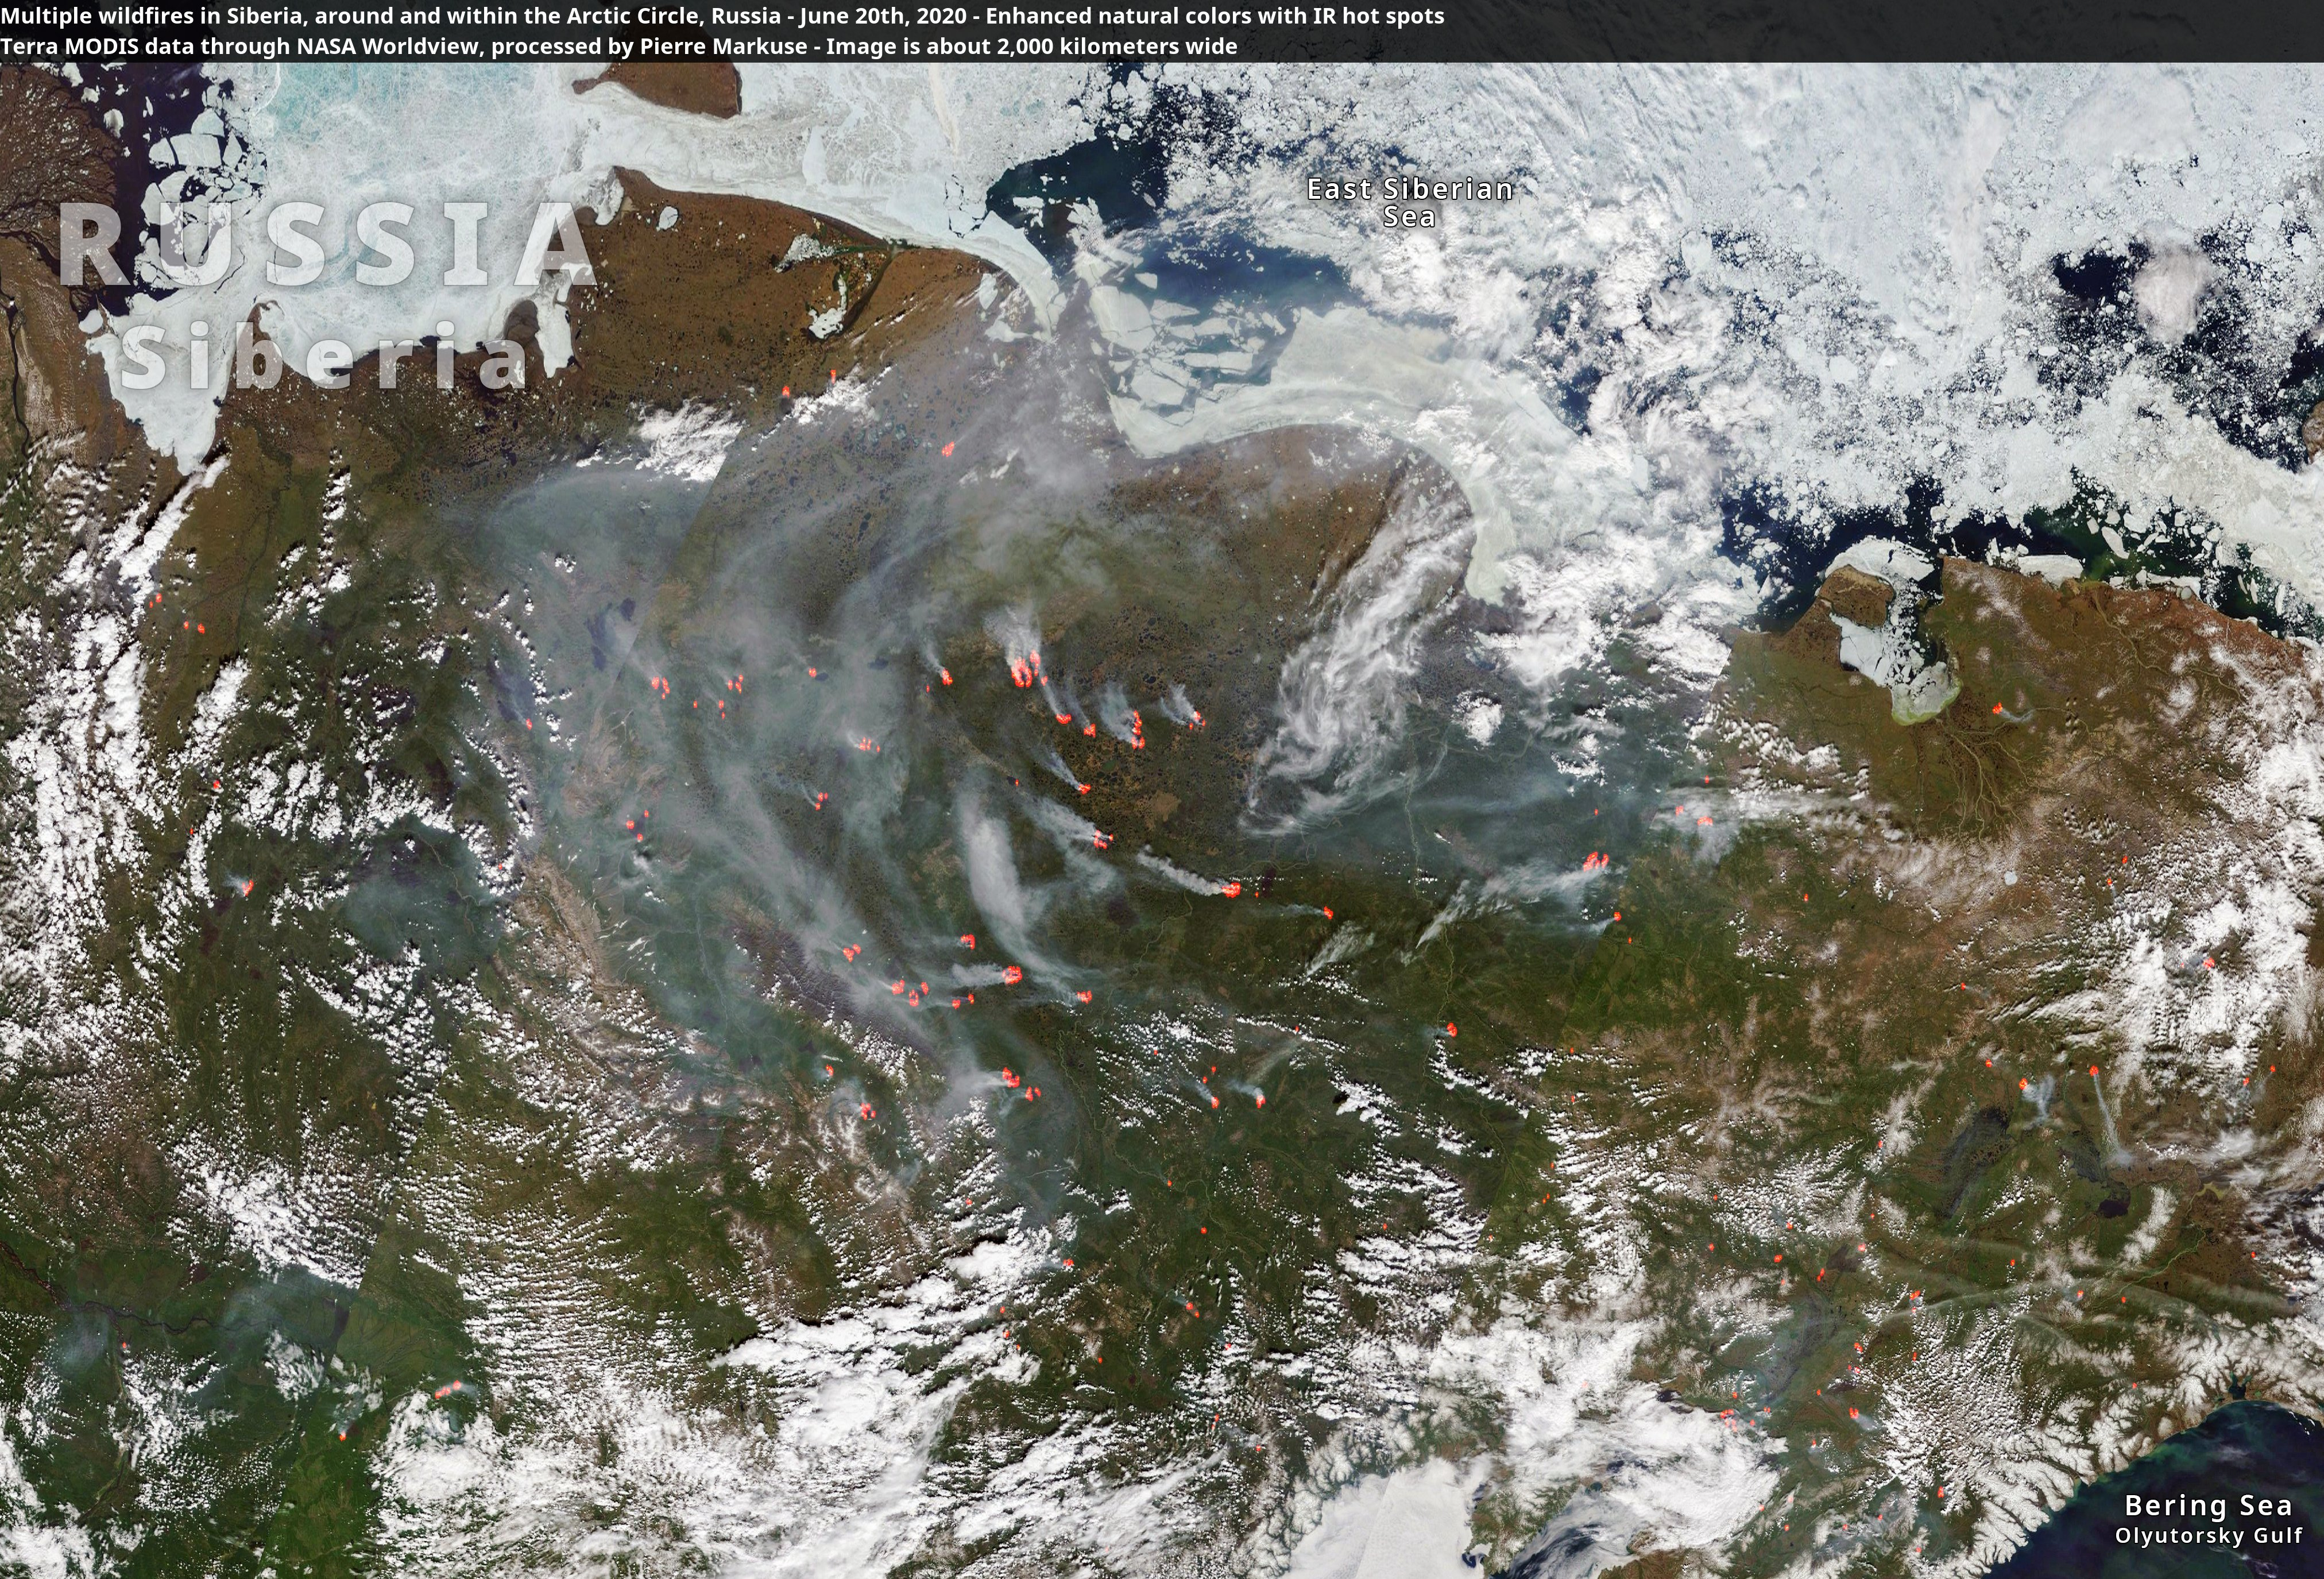 Satellite image of multiple wildfires in Siberia with big smoke plumes visible. Terra MODIS data through NASA Worldview, processed by Pierre Markuse